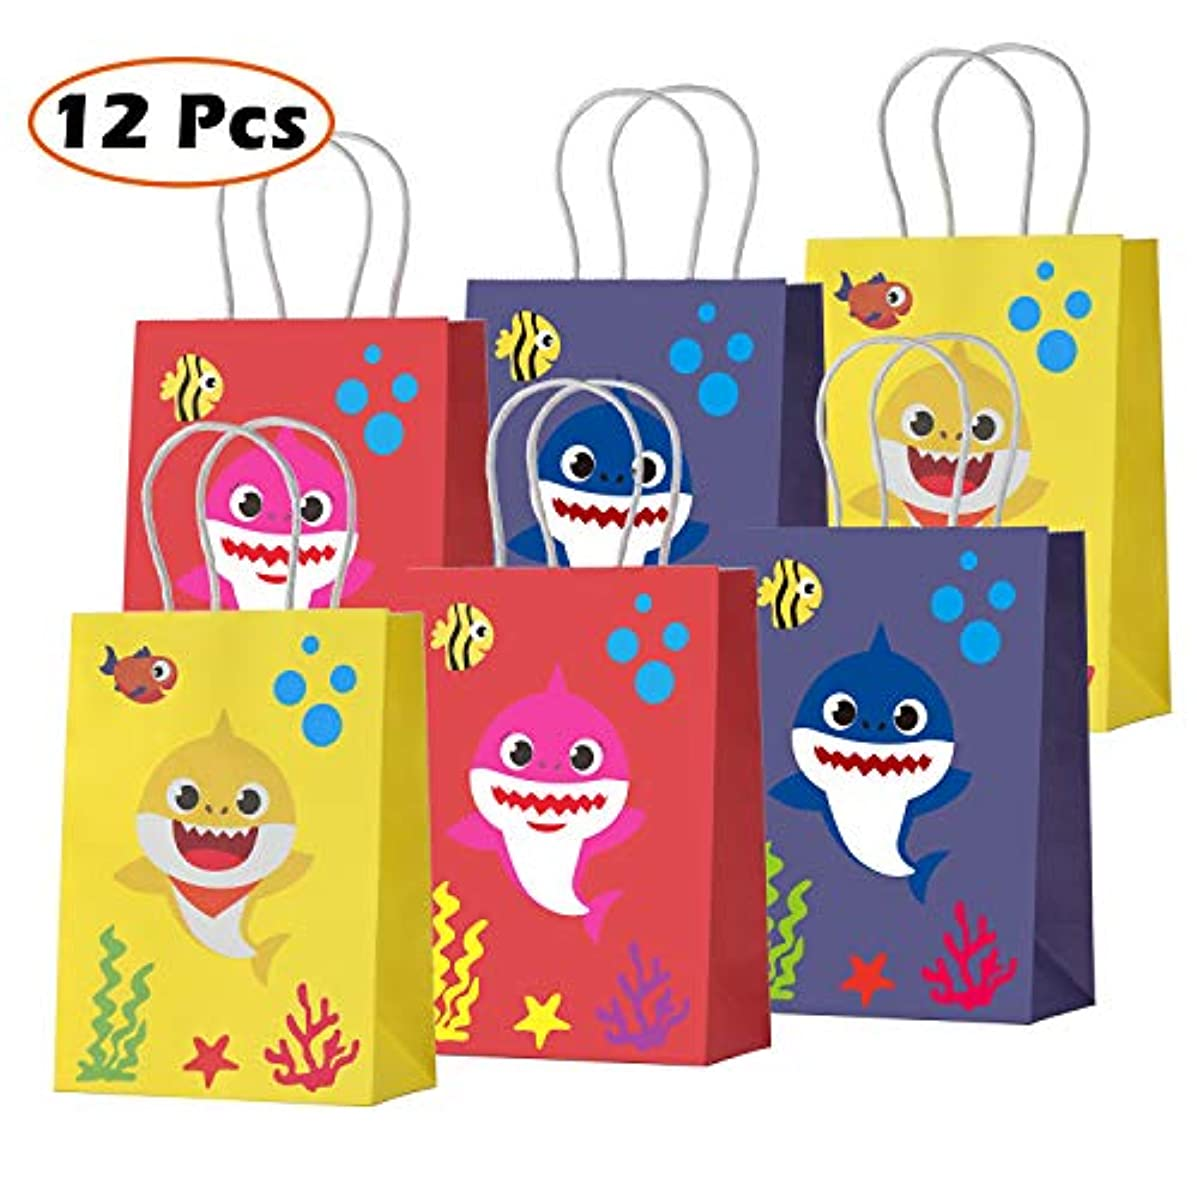 Baby Cute Shark Theme Party Gift Bags Shark Goodie Candy Treat Paper Bags for Baby Shower Kids Girls or Boys Birthday Party Supplies